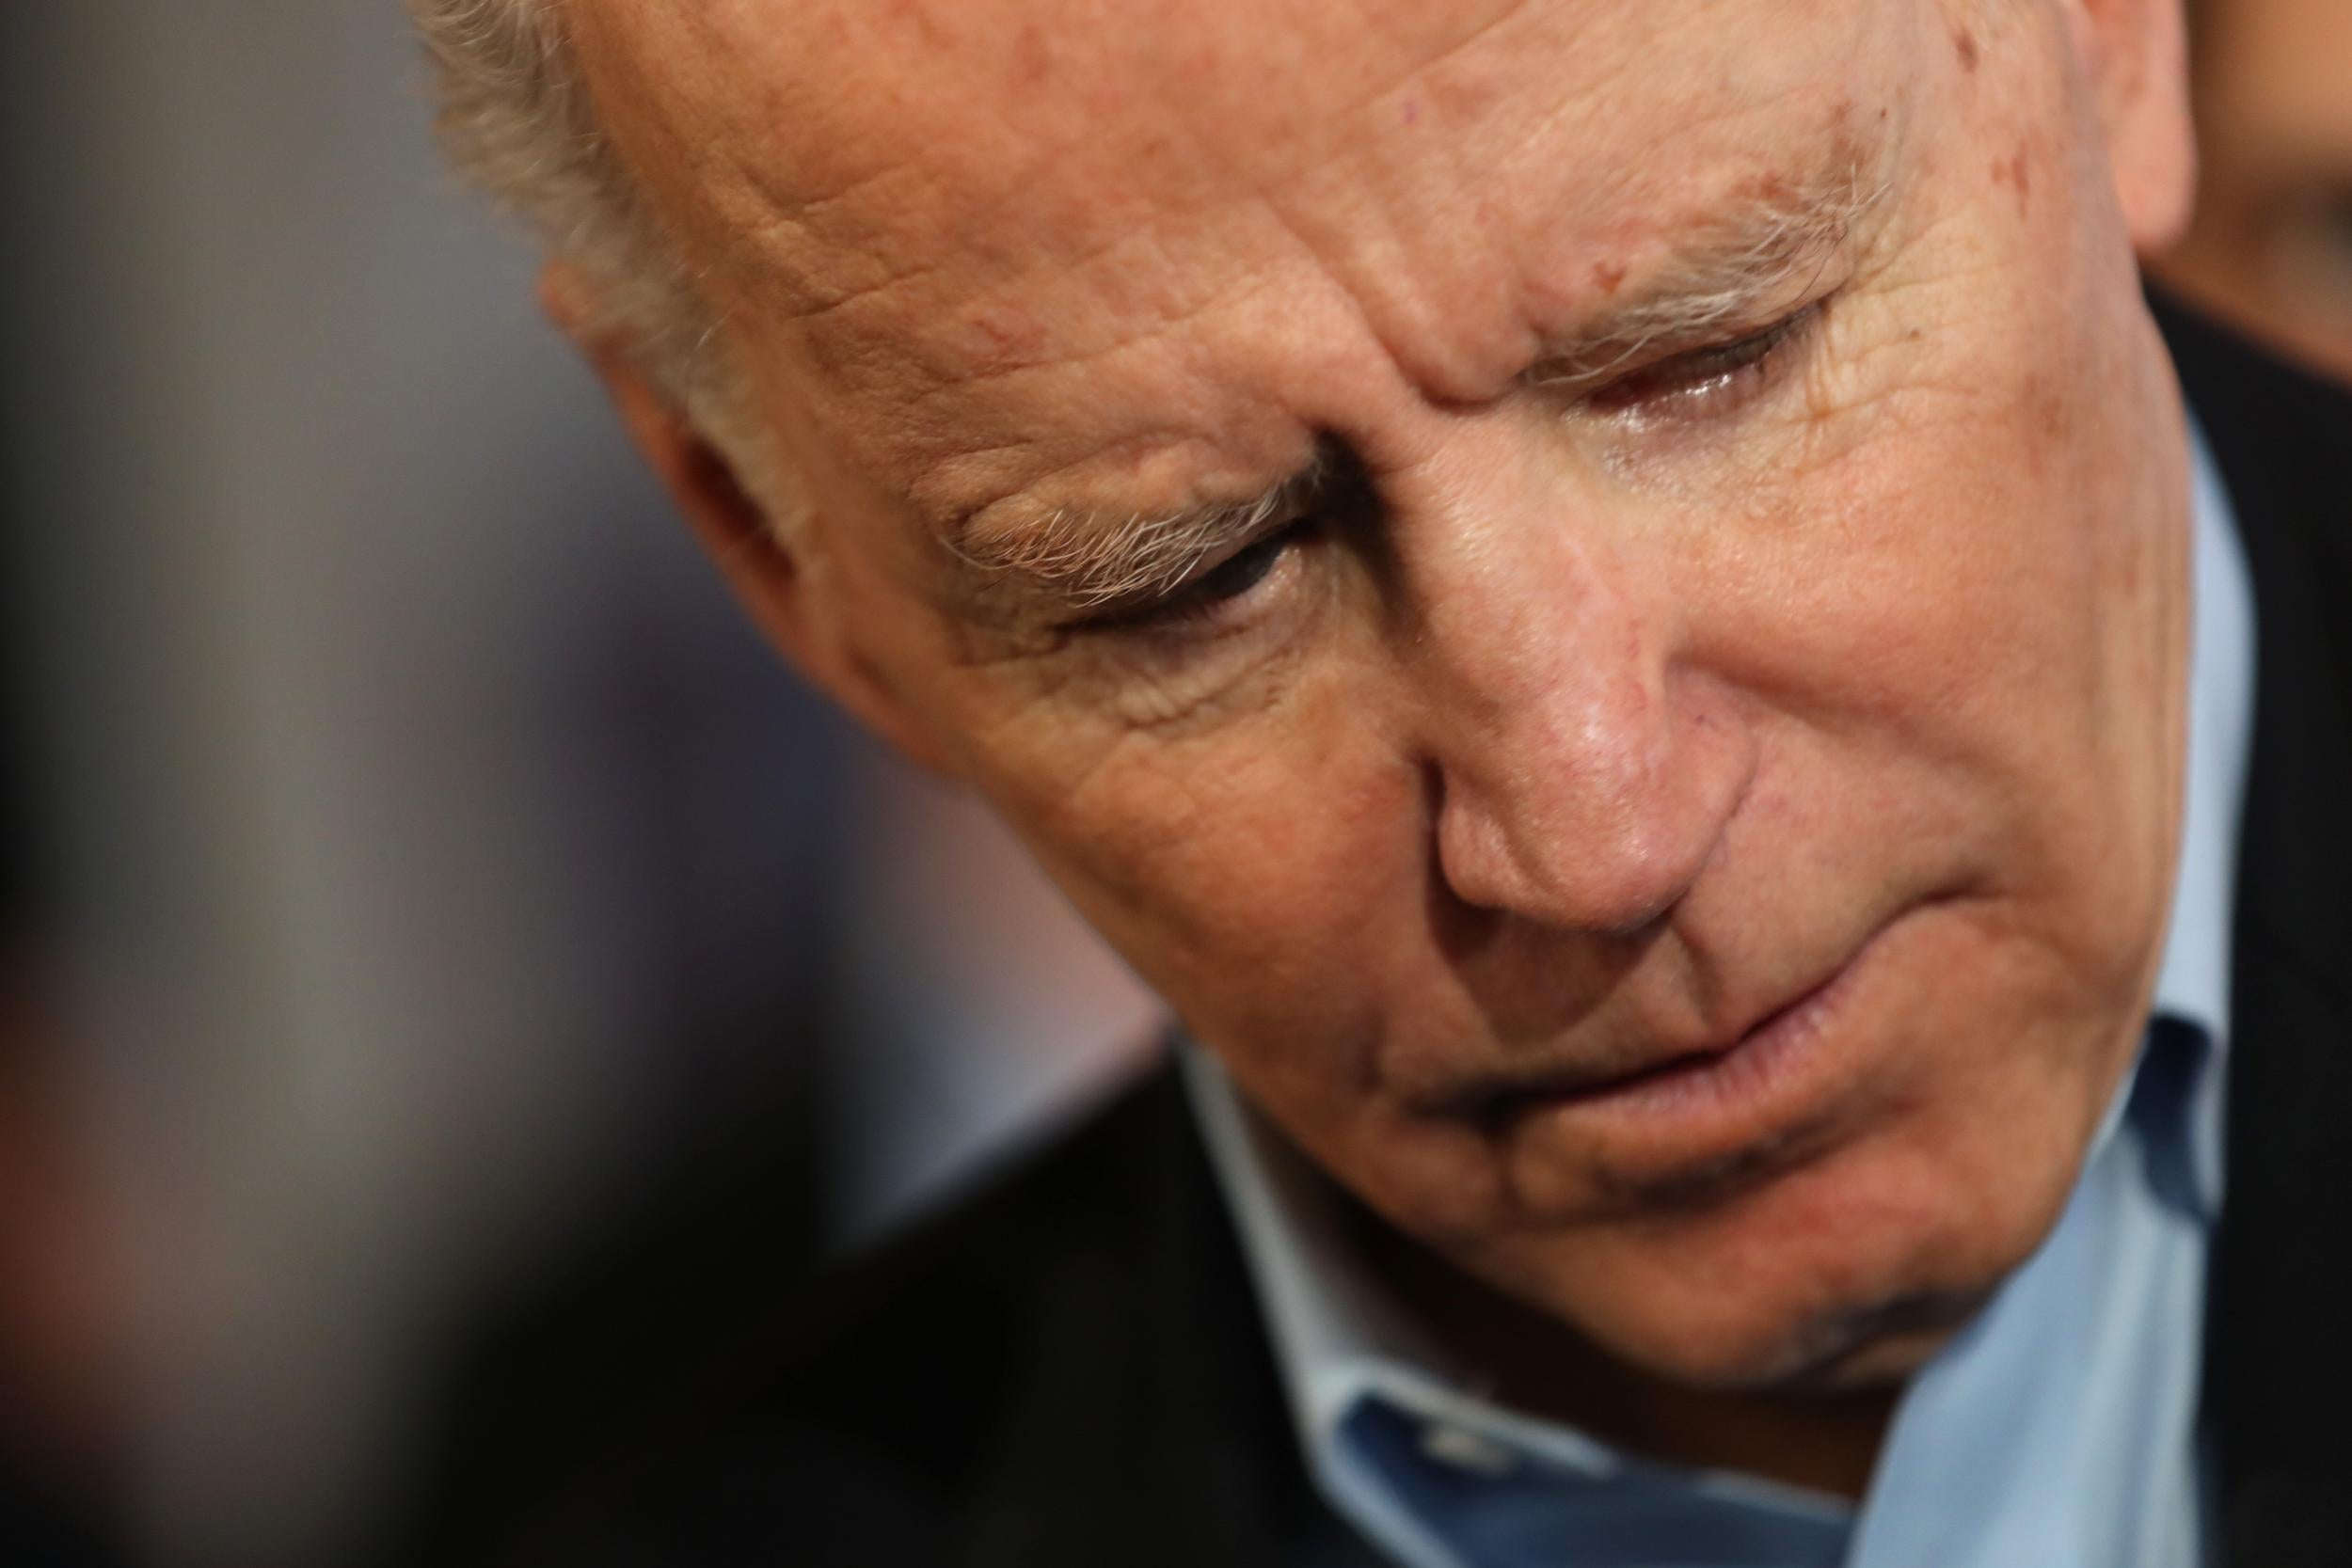 Biden walks back comment that African-Americans who don't vote for him 'ain't black' thumbnail